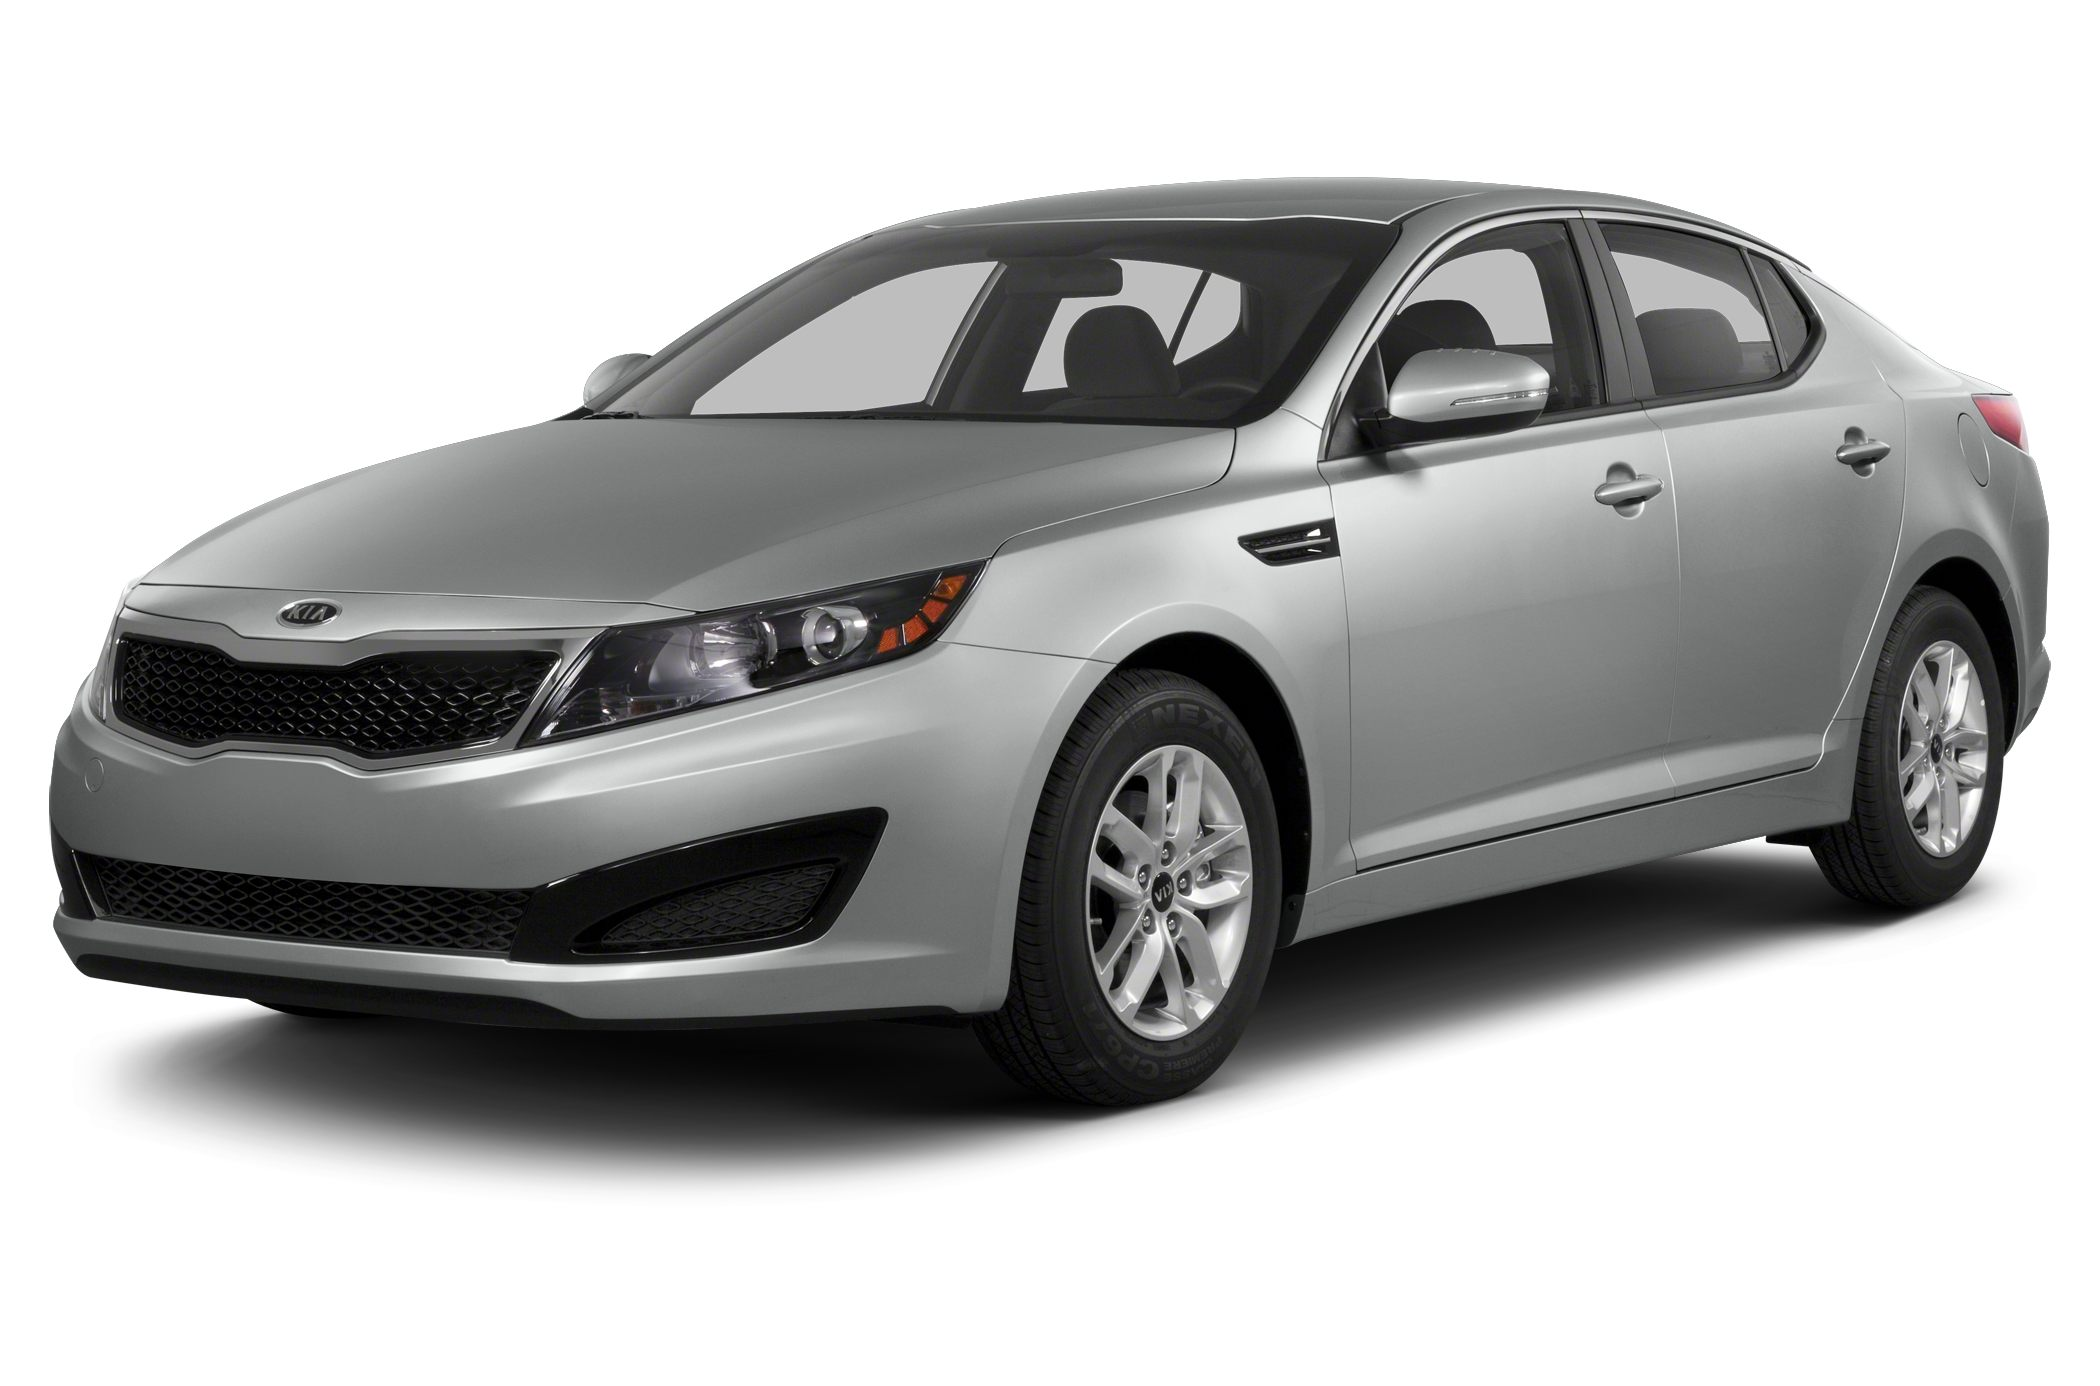 2013 Kia Optima SX Sedan for sale in Everett for $22,987 with 23,892 miles